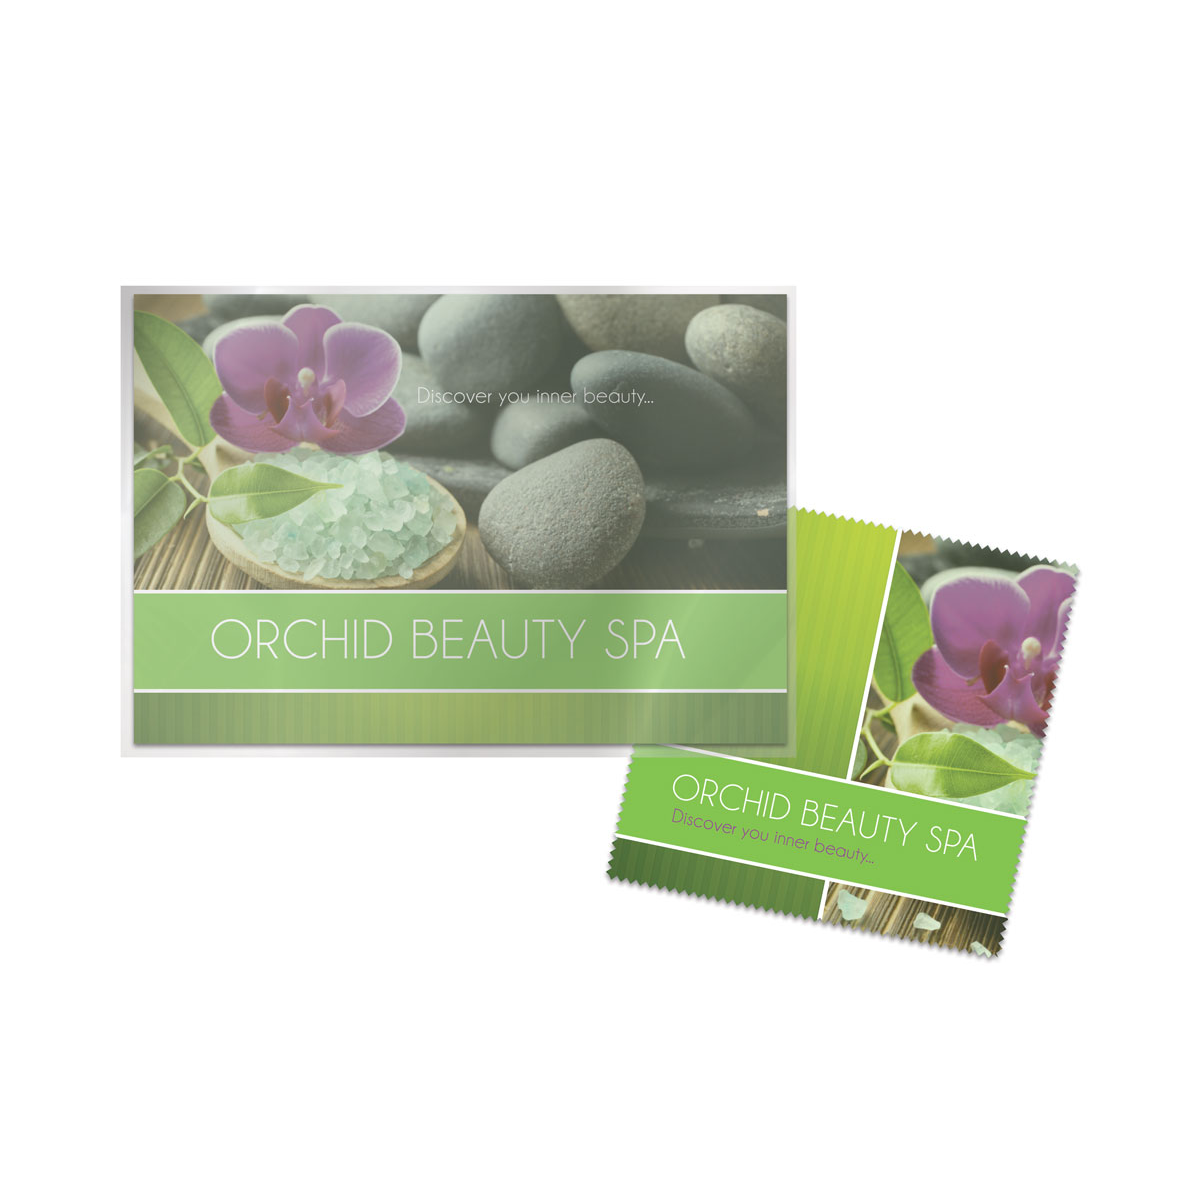 Full Color (4CP) - Microfiber Cloth + Direct Mailer Postcard